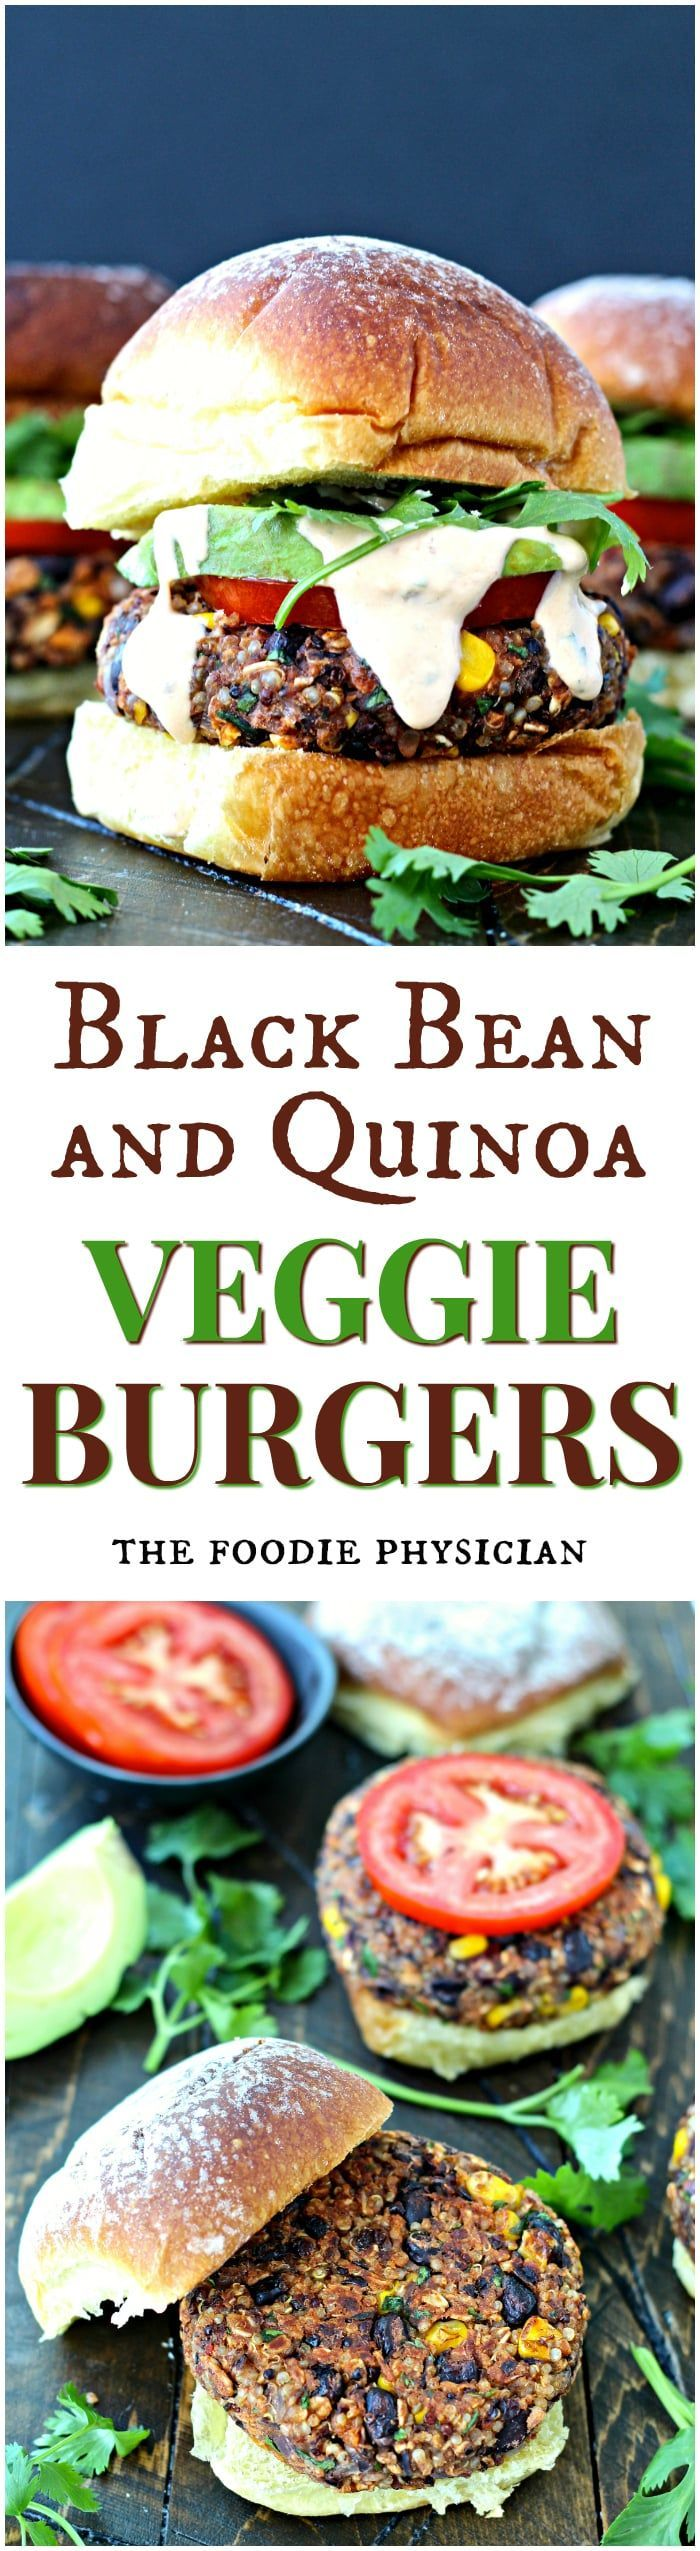 Black Bean & Quinoa Veggie Burgers - these flavorful plant-based burgers are packed with plenty of protein and fiber to keep you feeling full and satisfied!